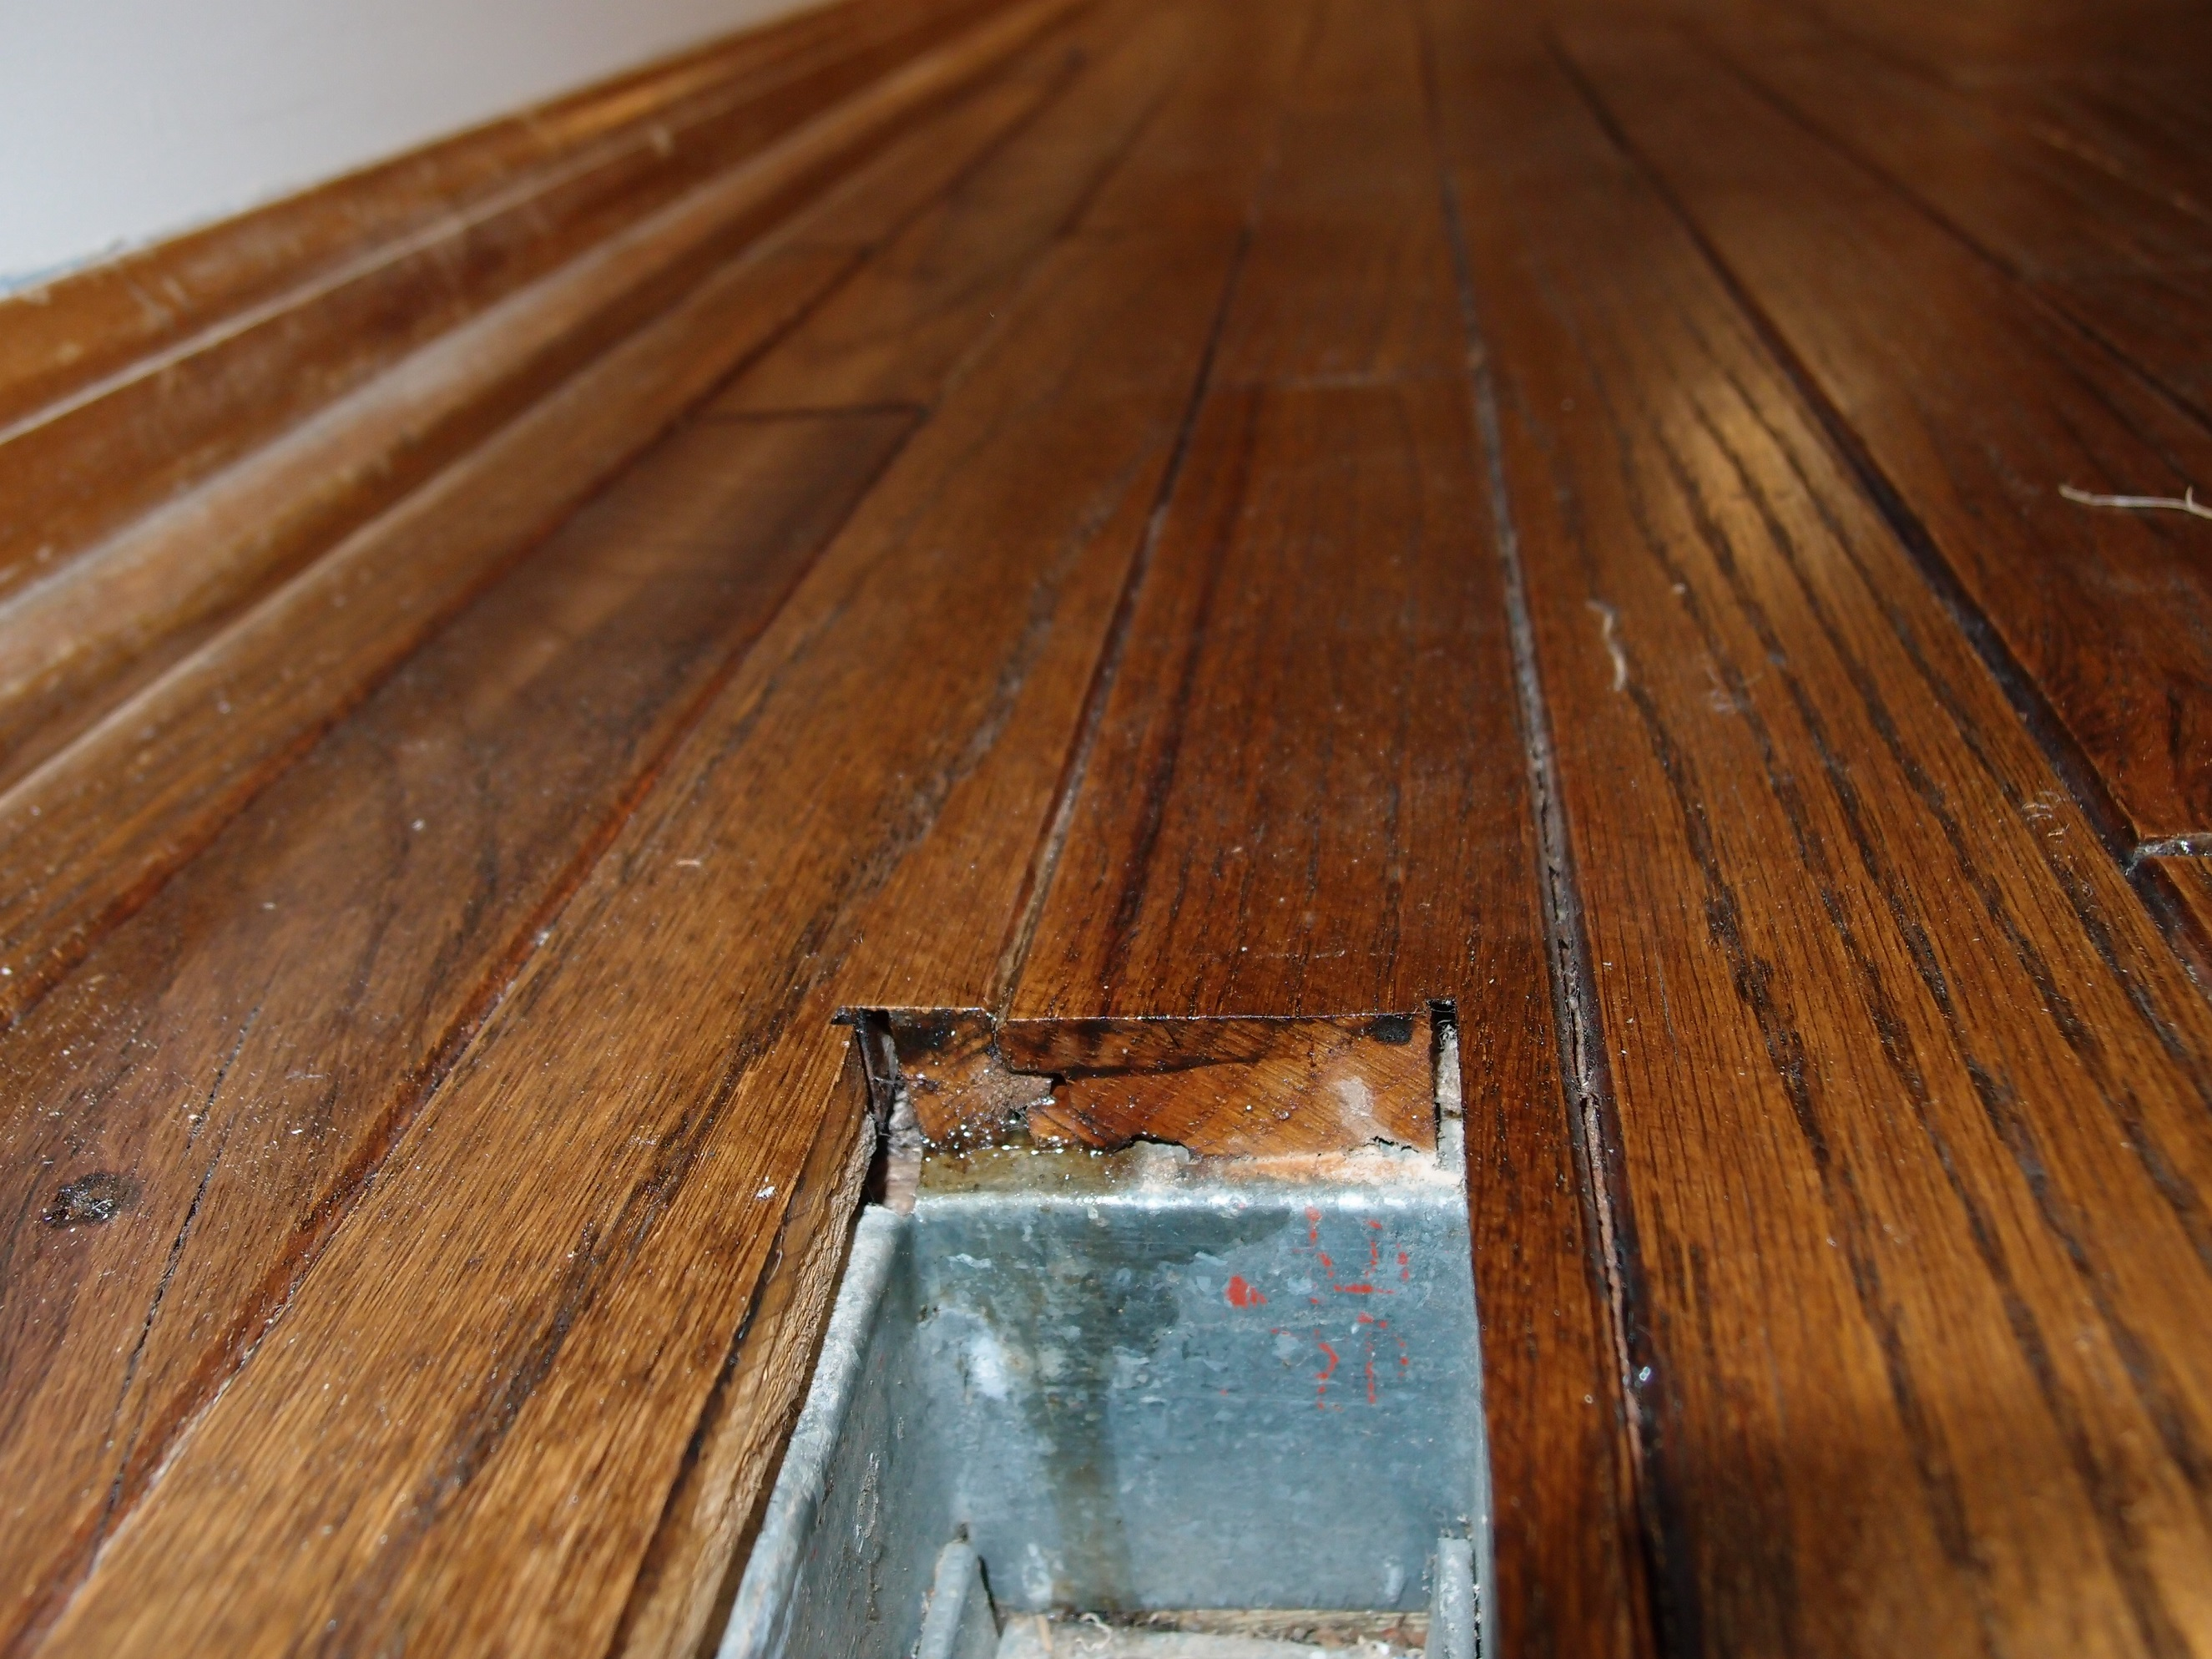 Refinishing Hardwood Floor With Edge Groove P2138462